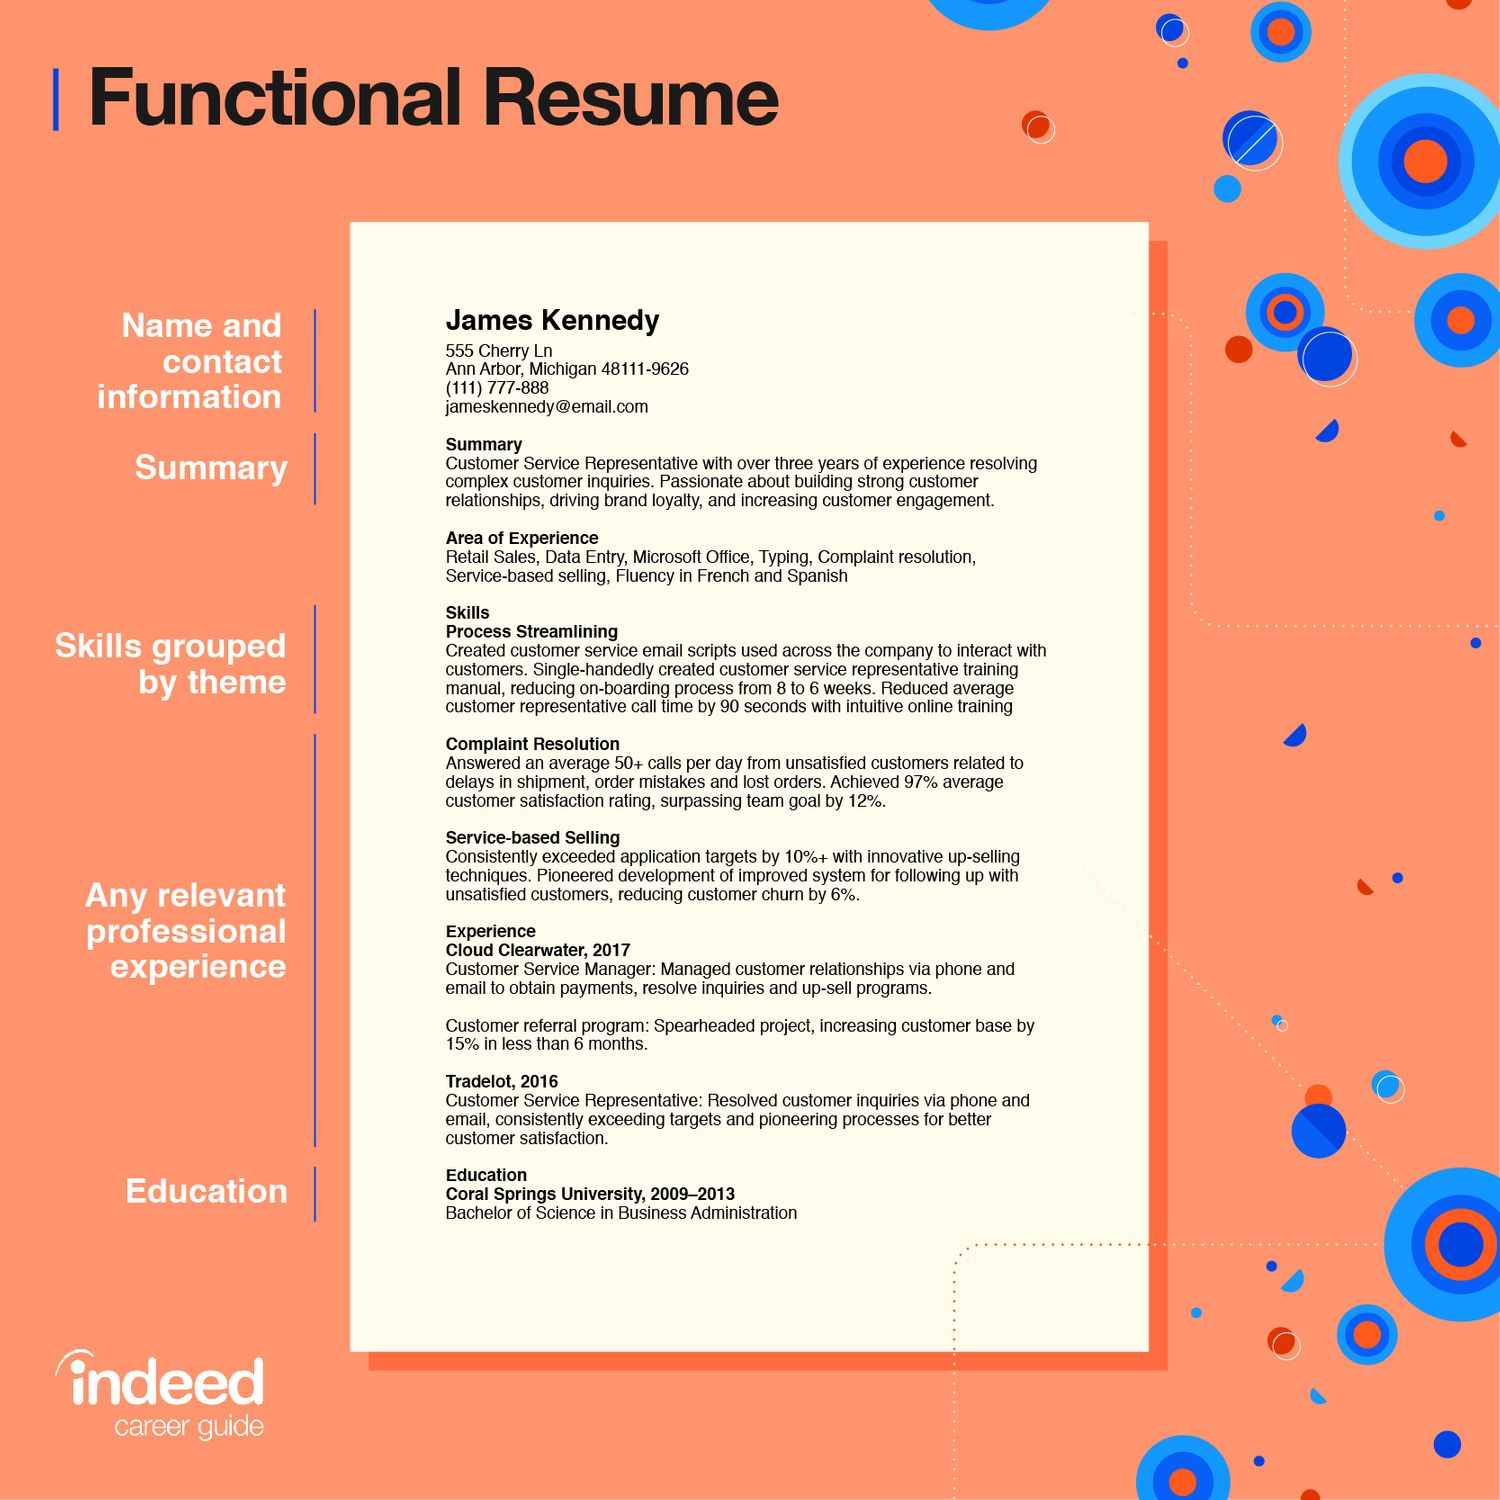 resume format guide tips and examples of the best formats indeed good looking resized Resume Good Looking Resume Format